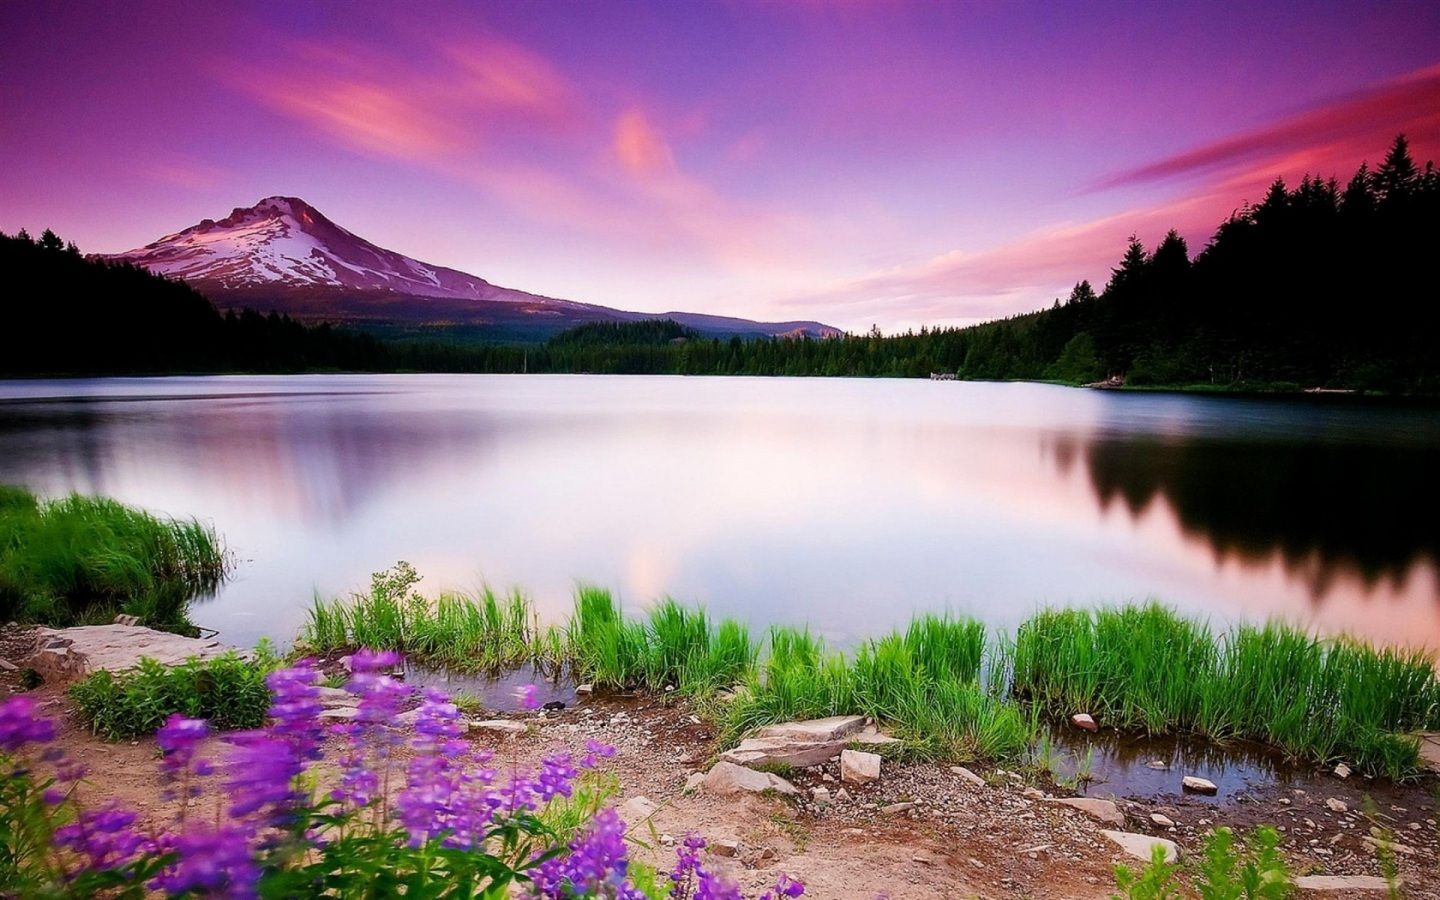 Scenary Wallpaper Wallpapers For Gt Beautiful Scenery Mobile Beautiful Nature